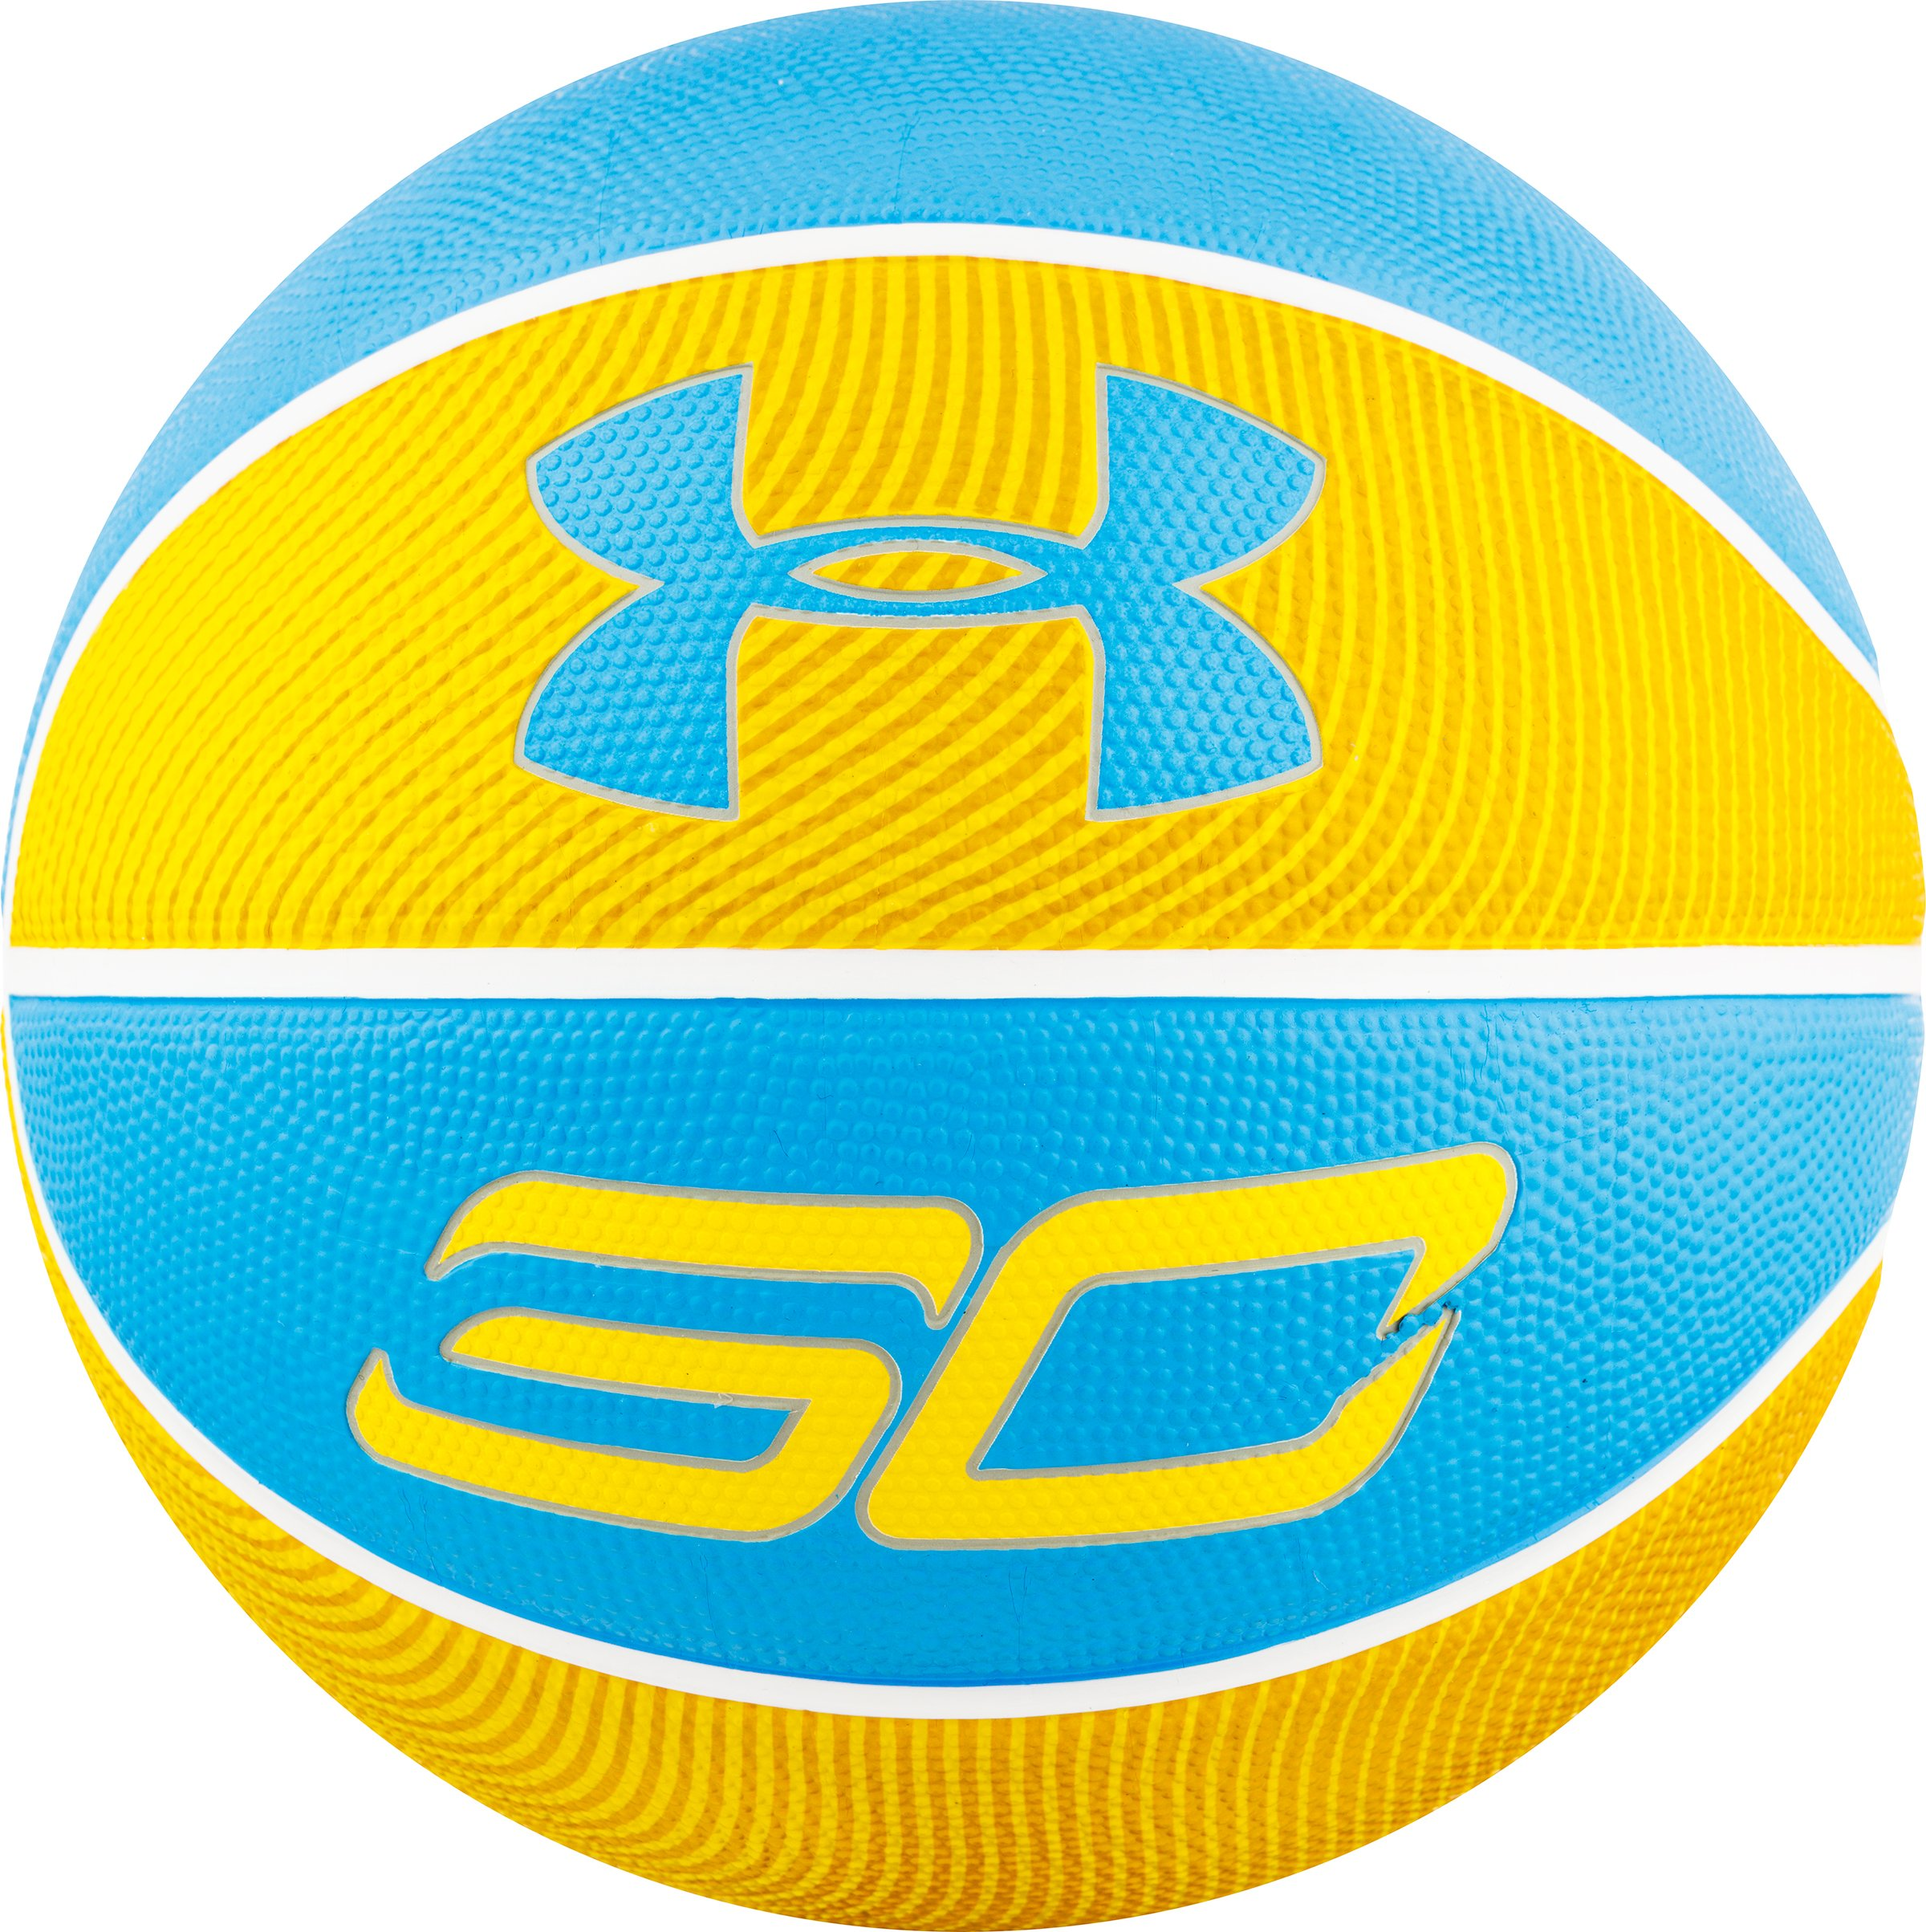 Under Armour Stephen Curry Player Outdoor Basketball,Yellow/Blue,27.5 / YOUTH SIZE / SIZE 5